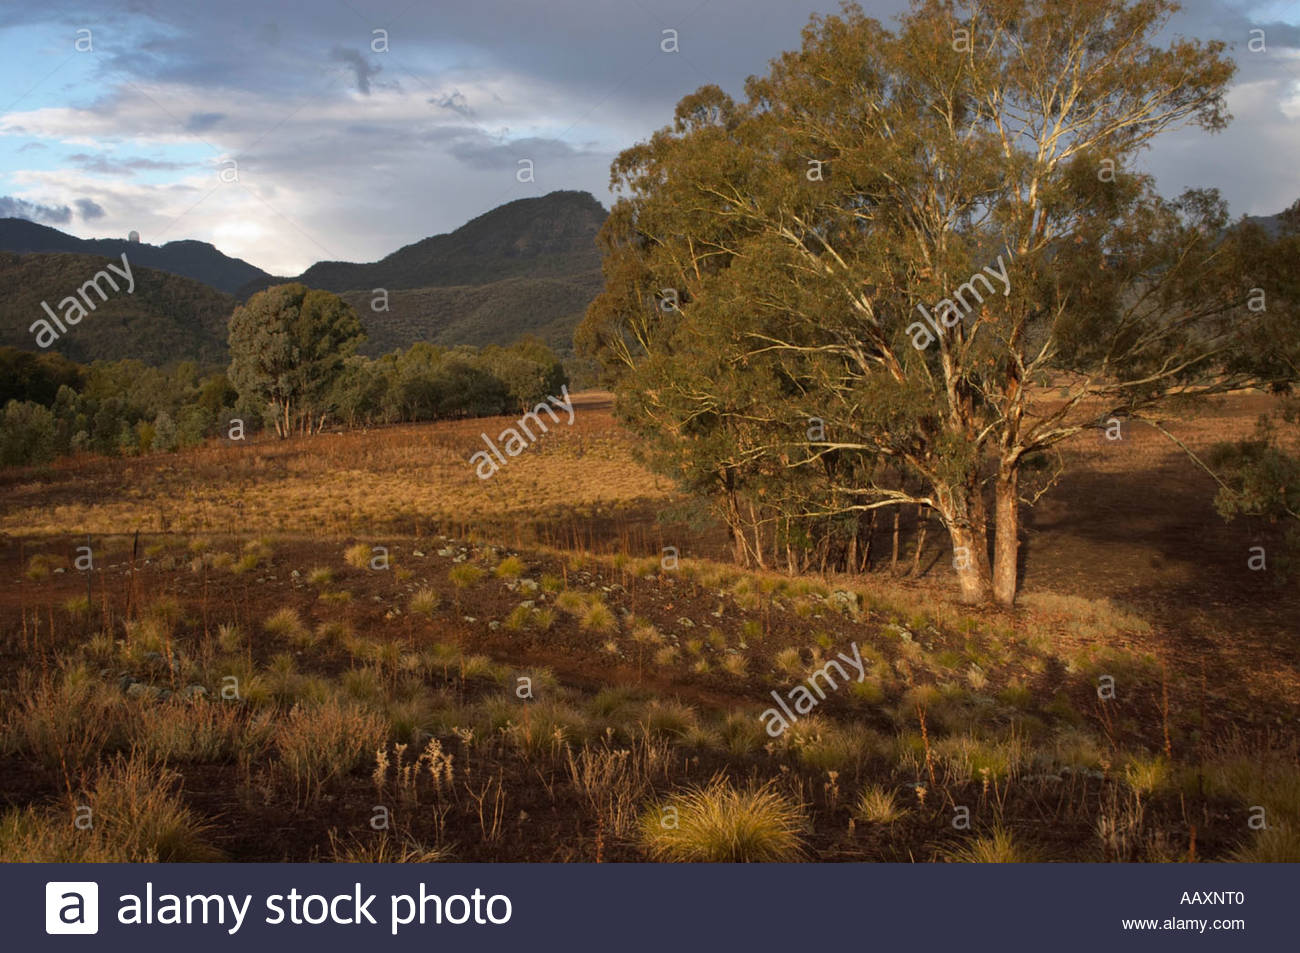 The sun just coming out after an afternoon shower at Camp Blackman in Warrumbungle National Park New South Wales Australia - Stock Image